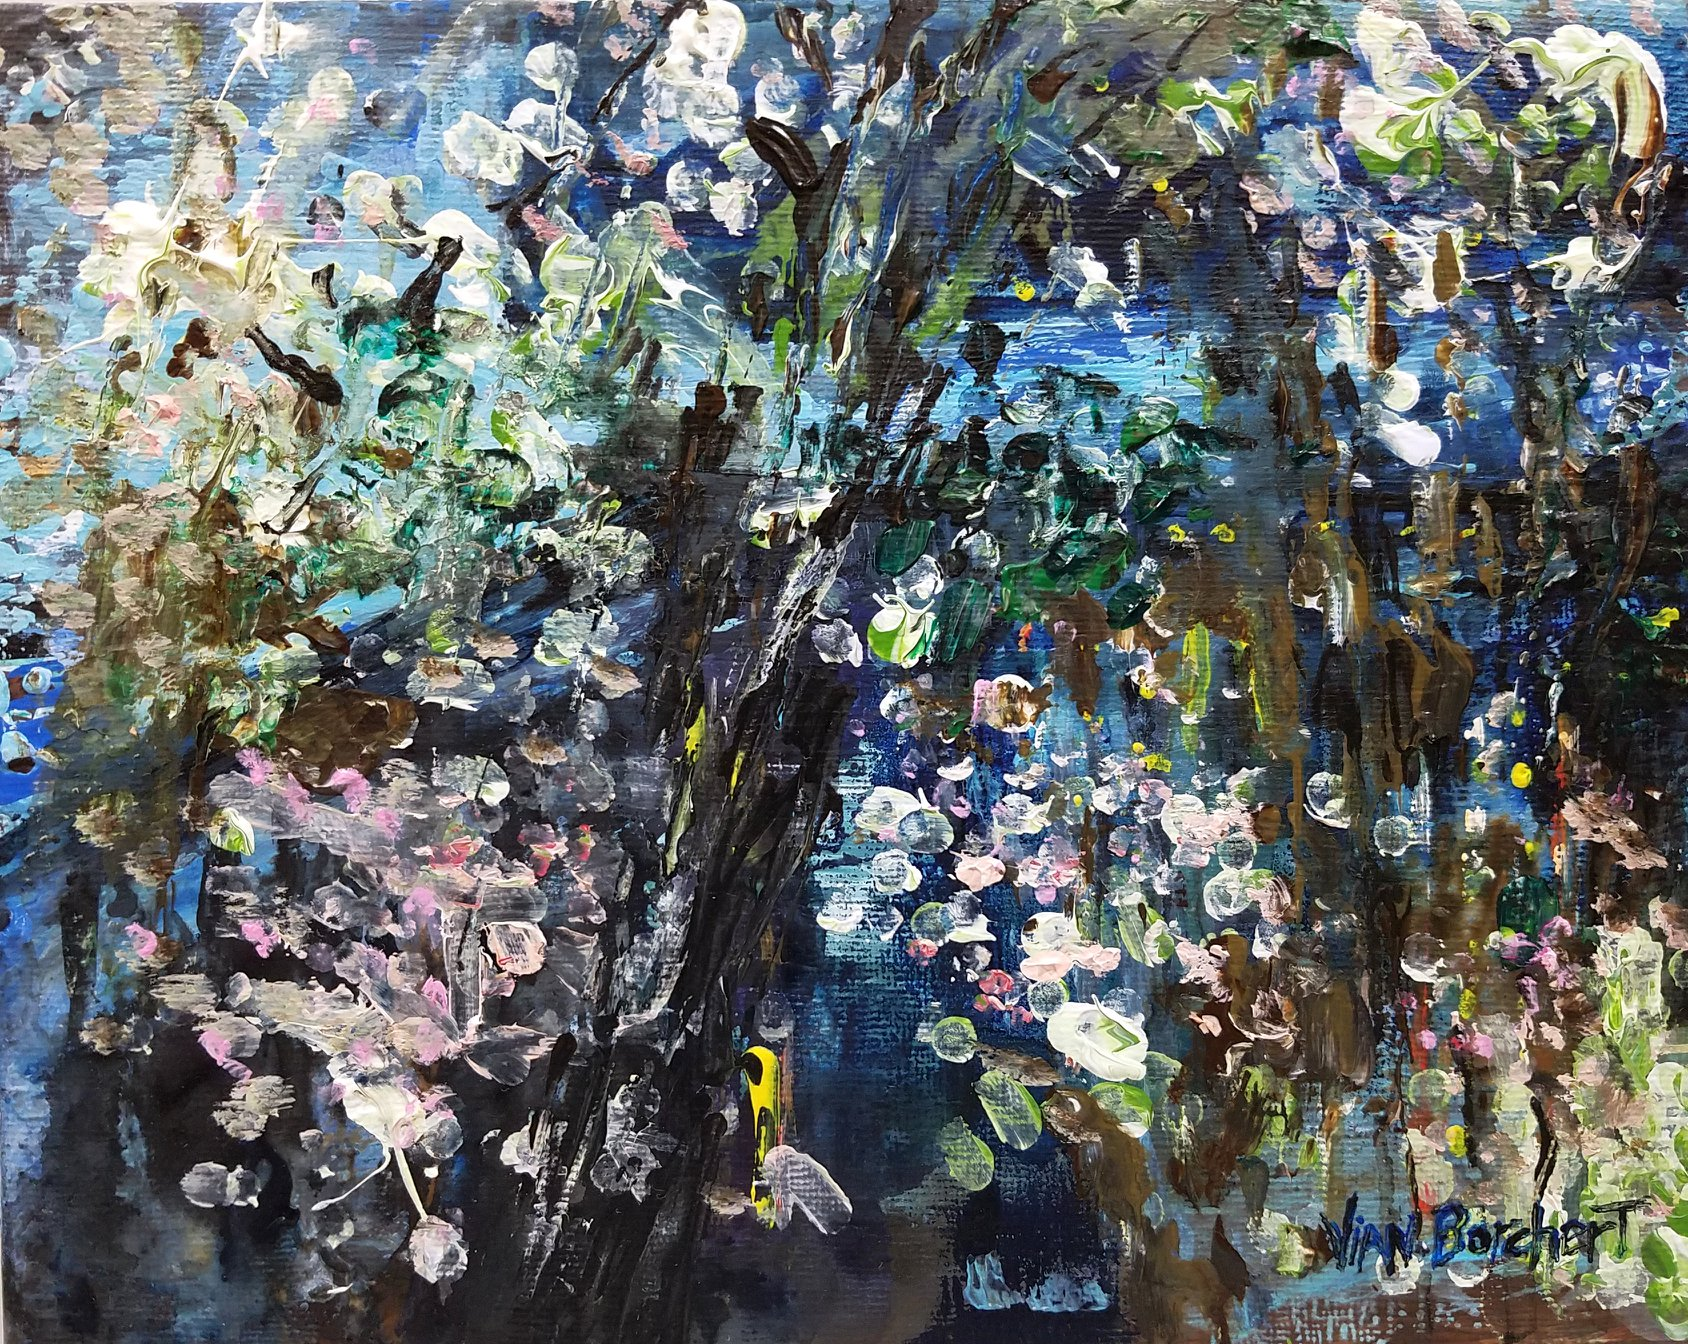 Painting, art, cherry blossom, impressionist, expressionist, abstract, landscape, abstract expressionism